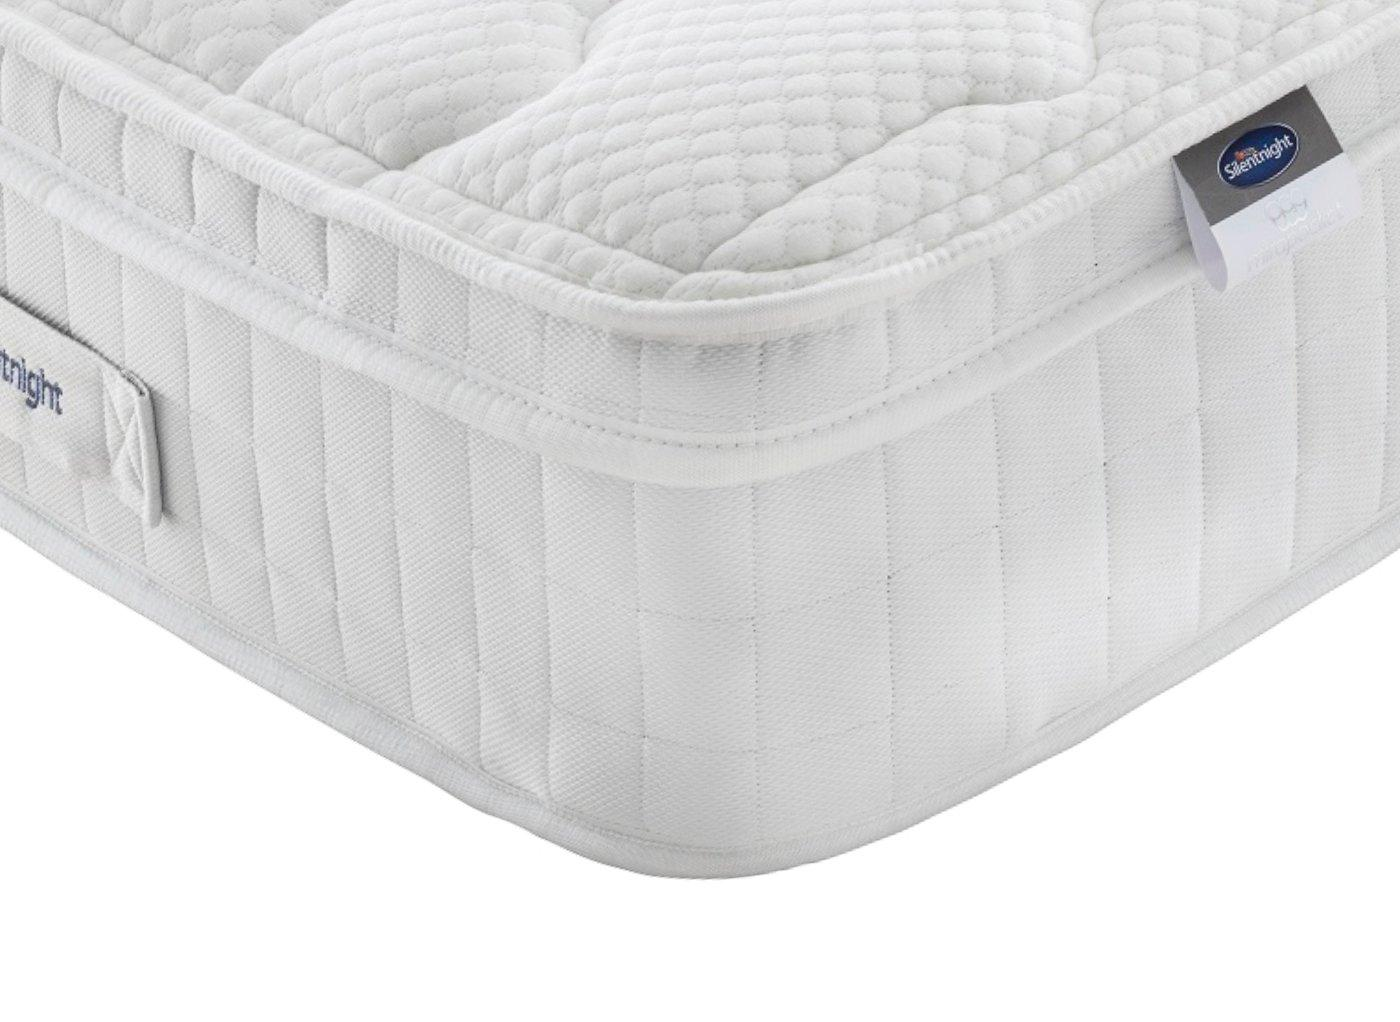 Silentnight Farrington Mirapocket Mattress 6'0 Super king